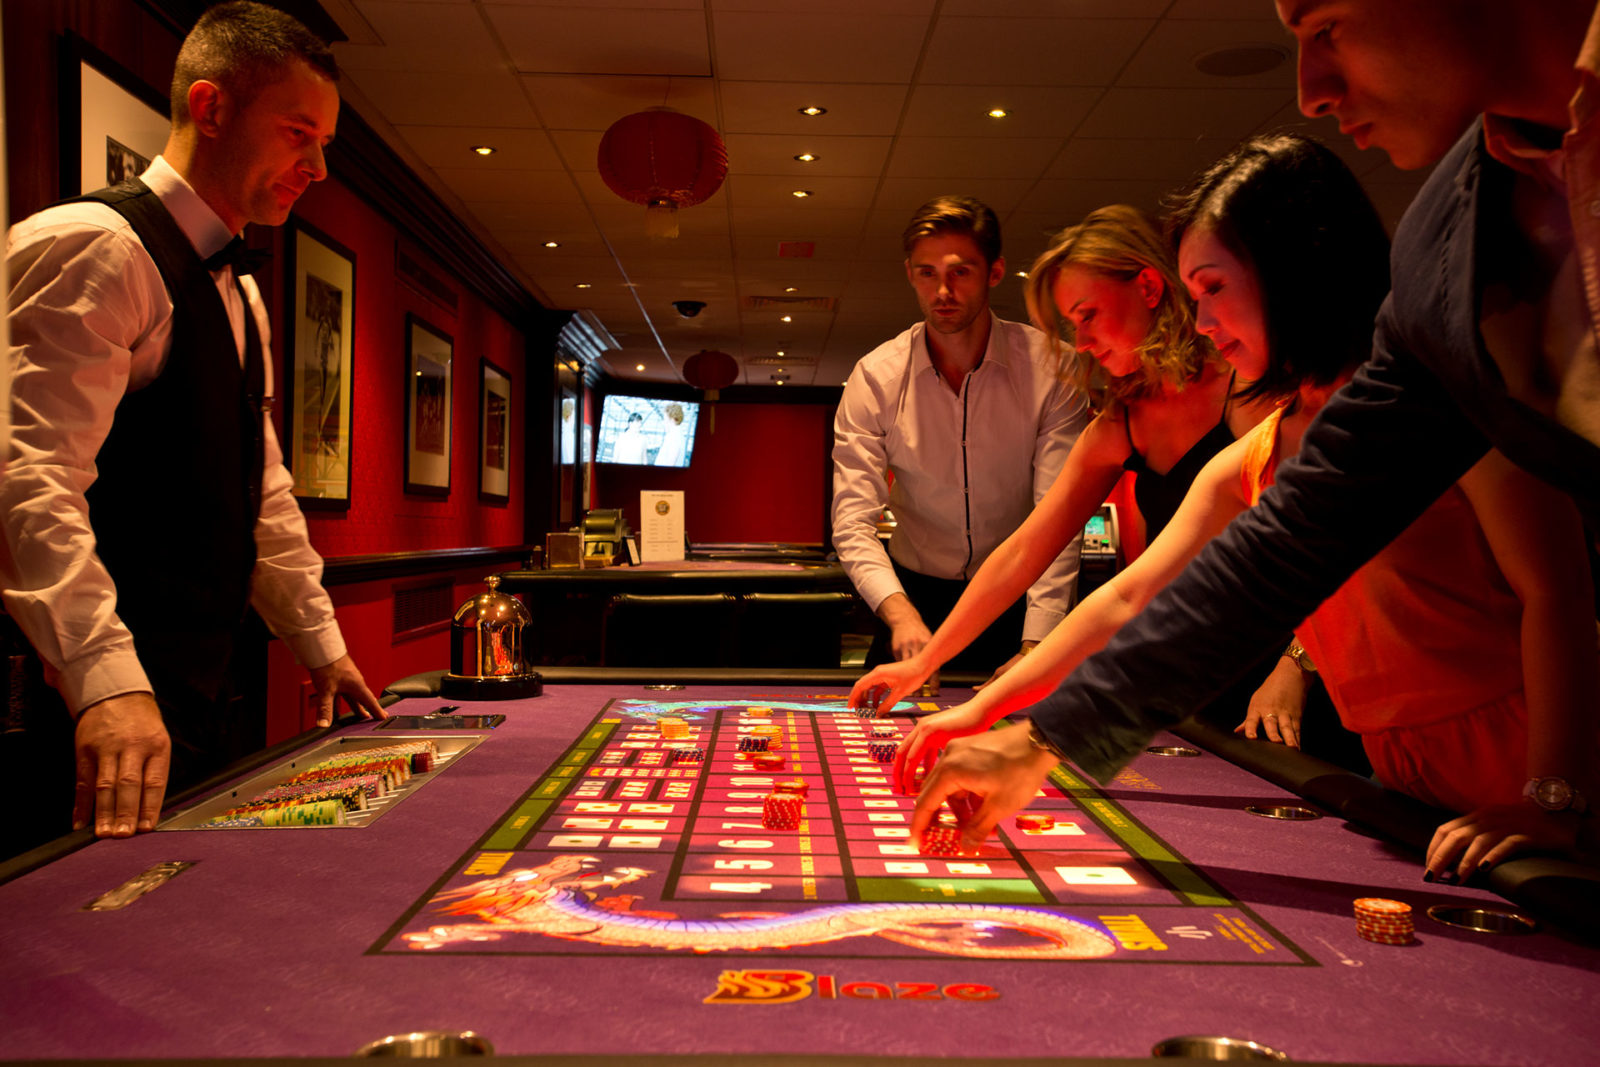 Best deals and promotions are offered in gambling sites do attract players